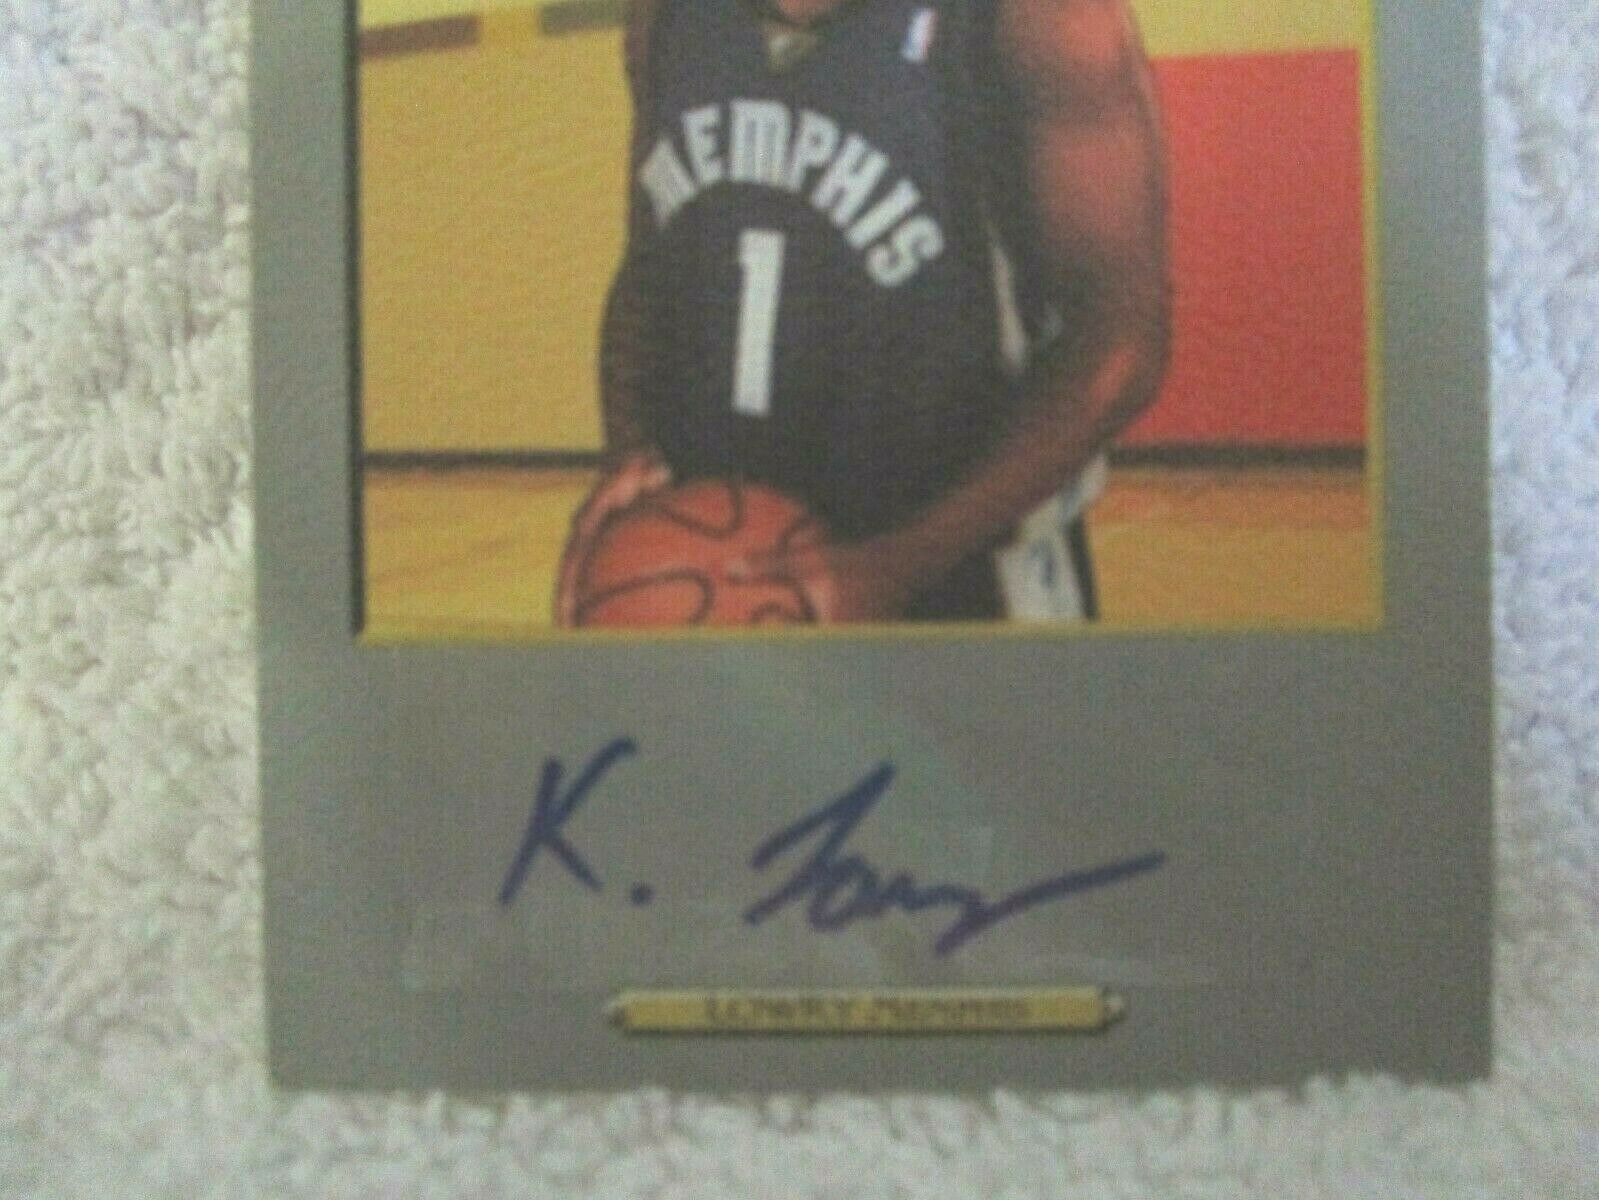 Kyle Lowry RC 2006-07 Topps Turkey Red Rookie Hologram Autograph GEM10?Raptors image 2